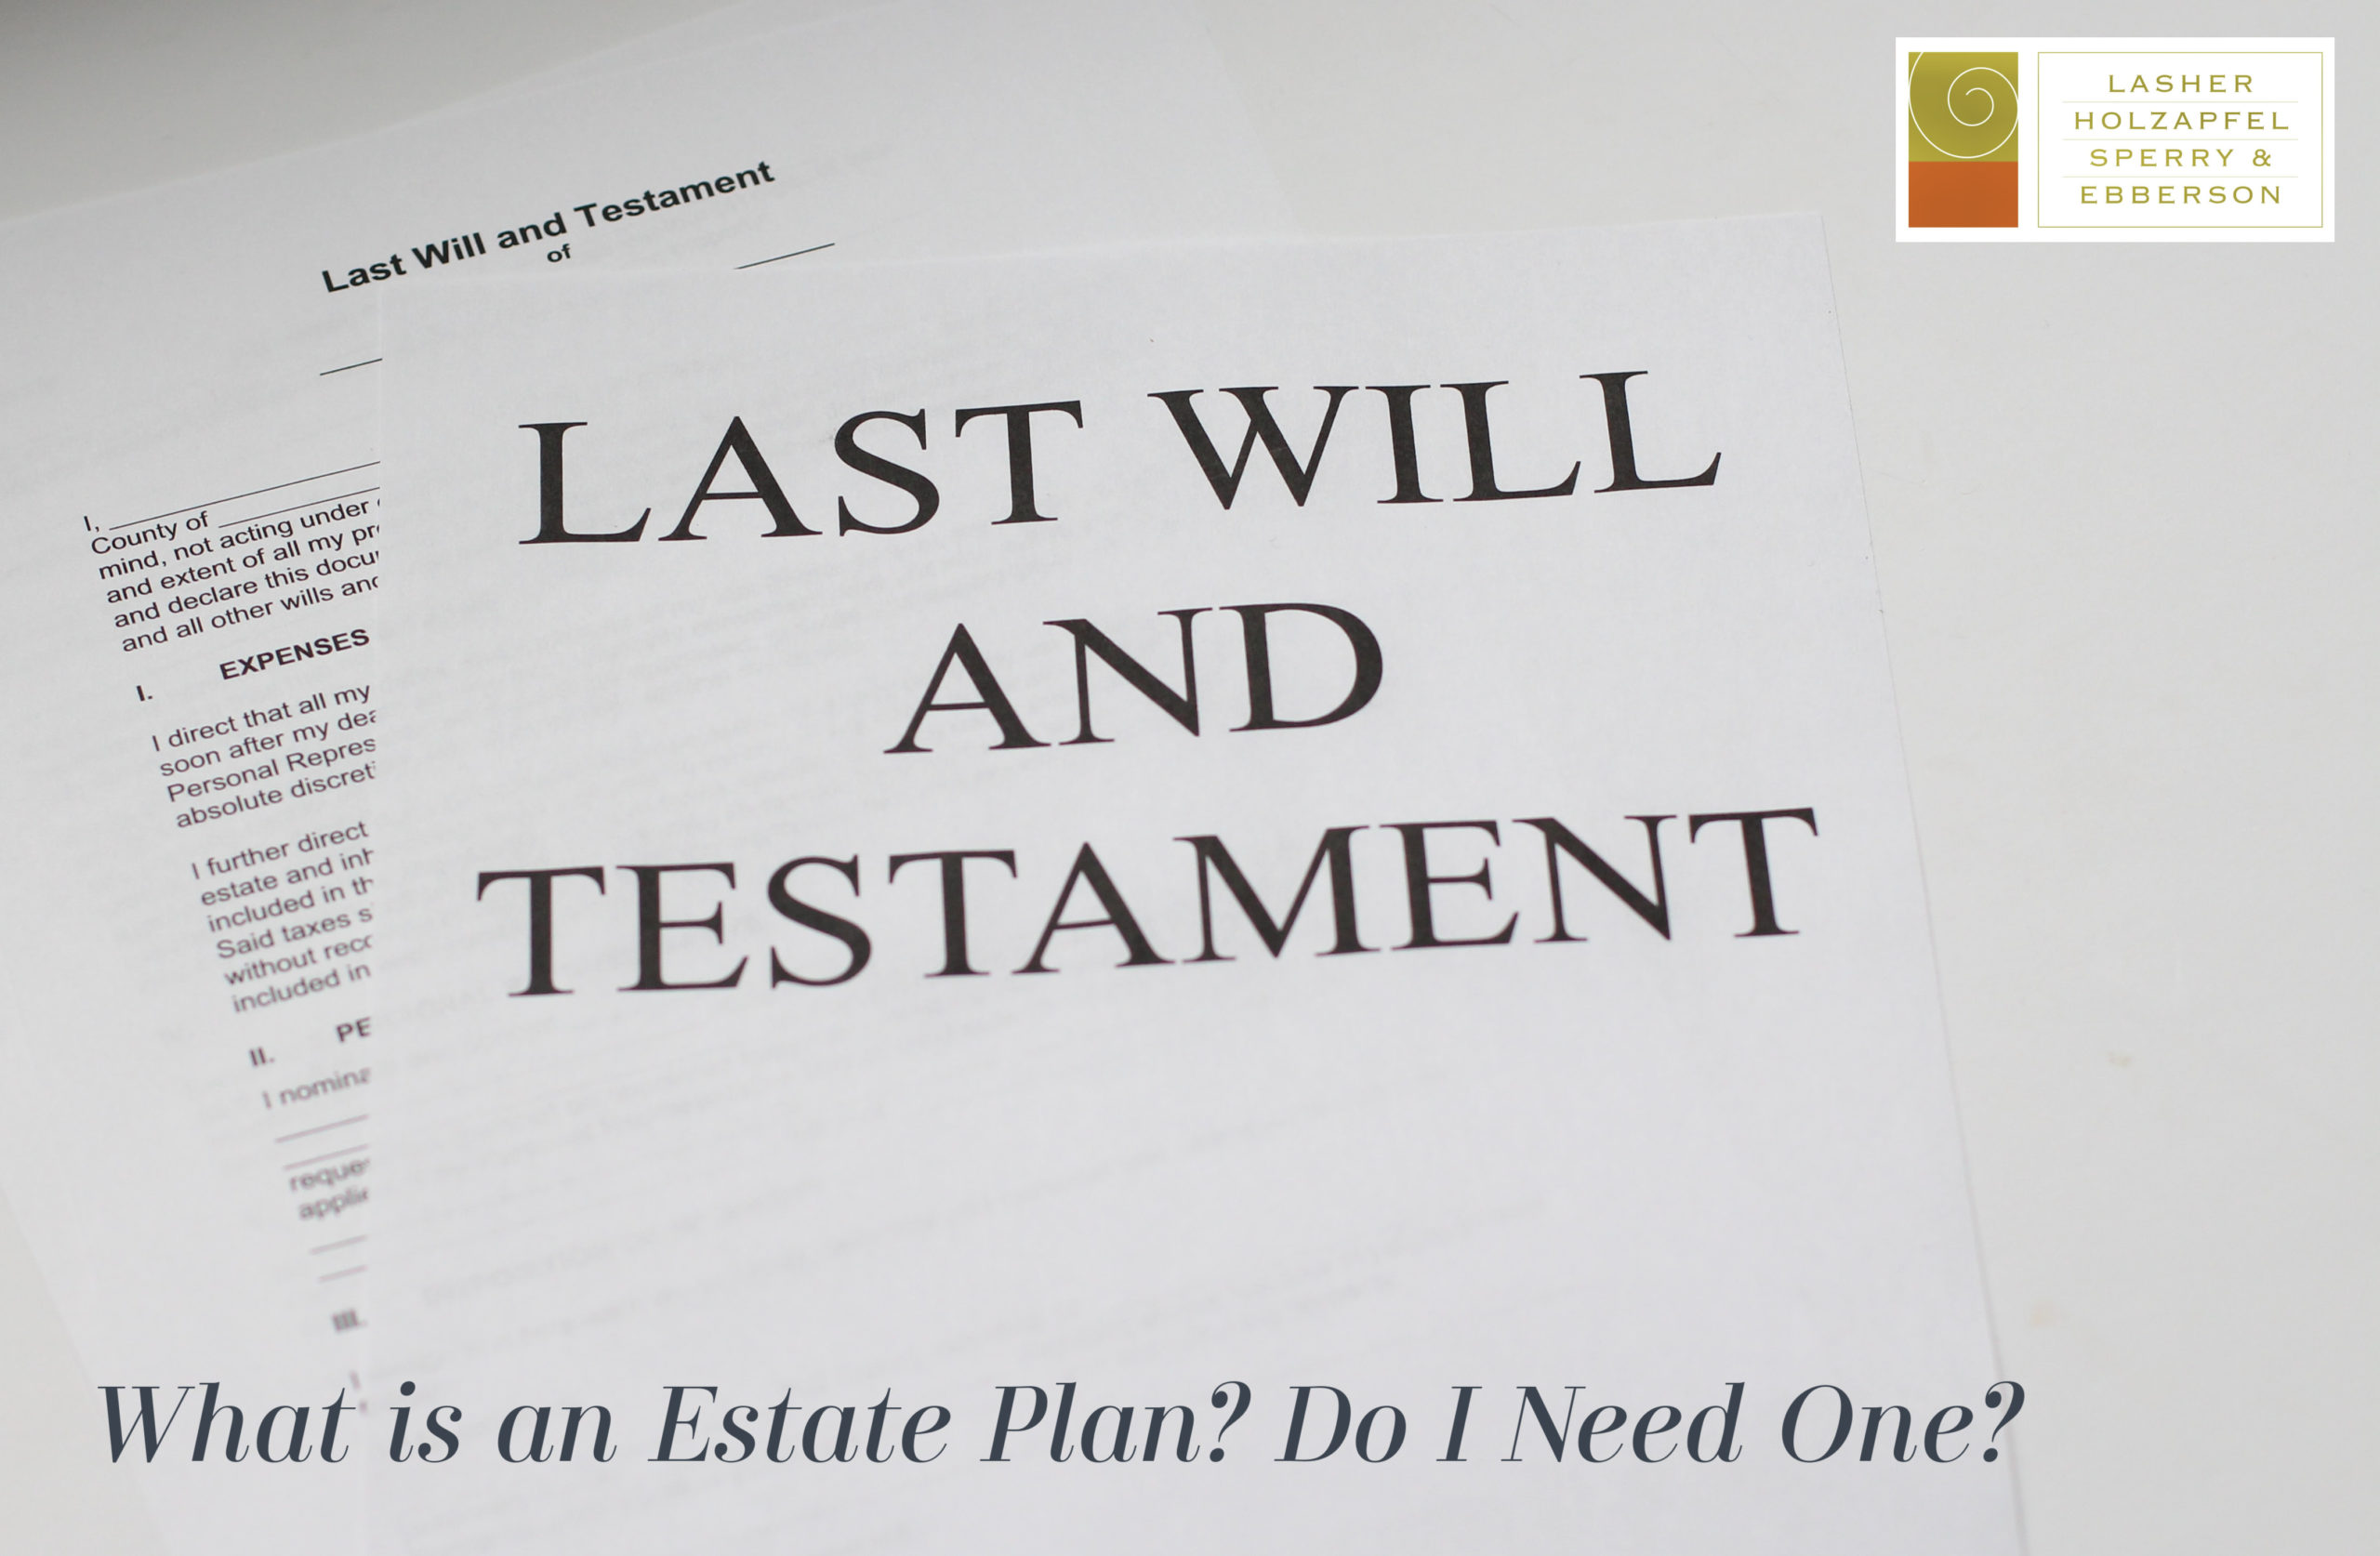 WHAT IS AN ESTATE PLAN?  DO I NEED ONE?